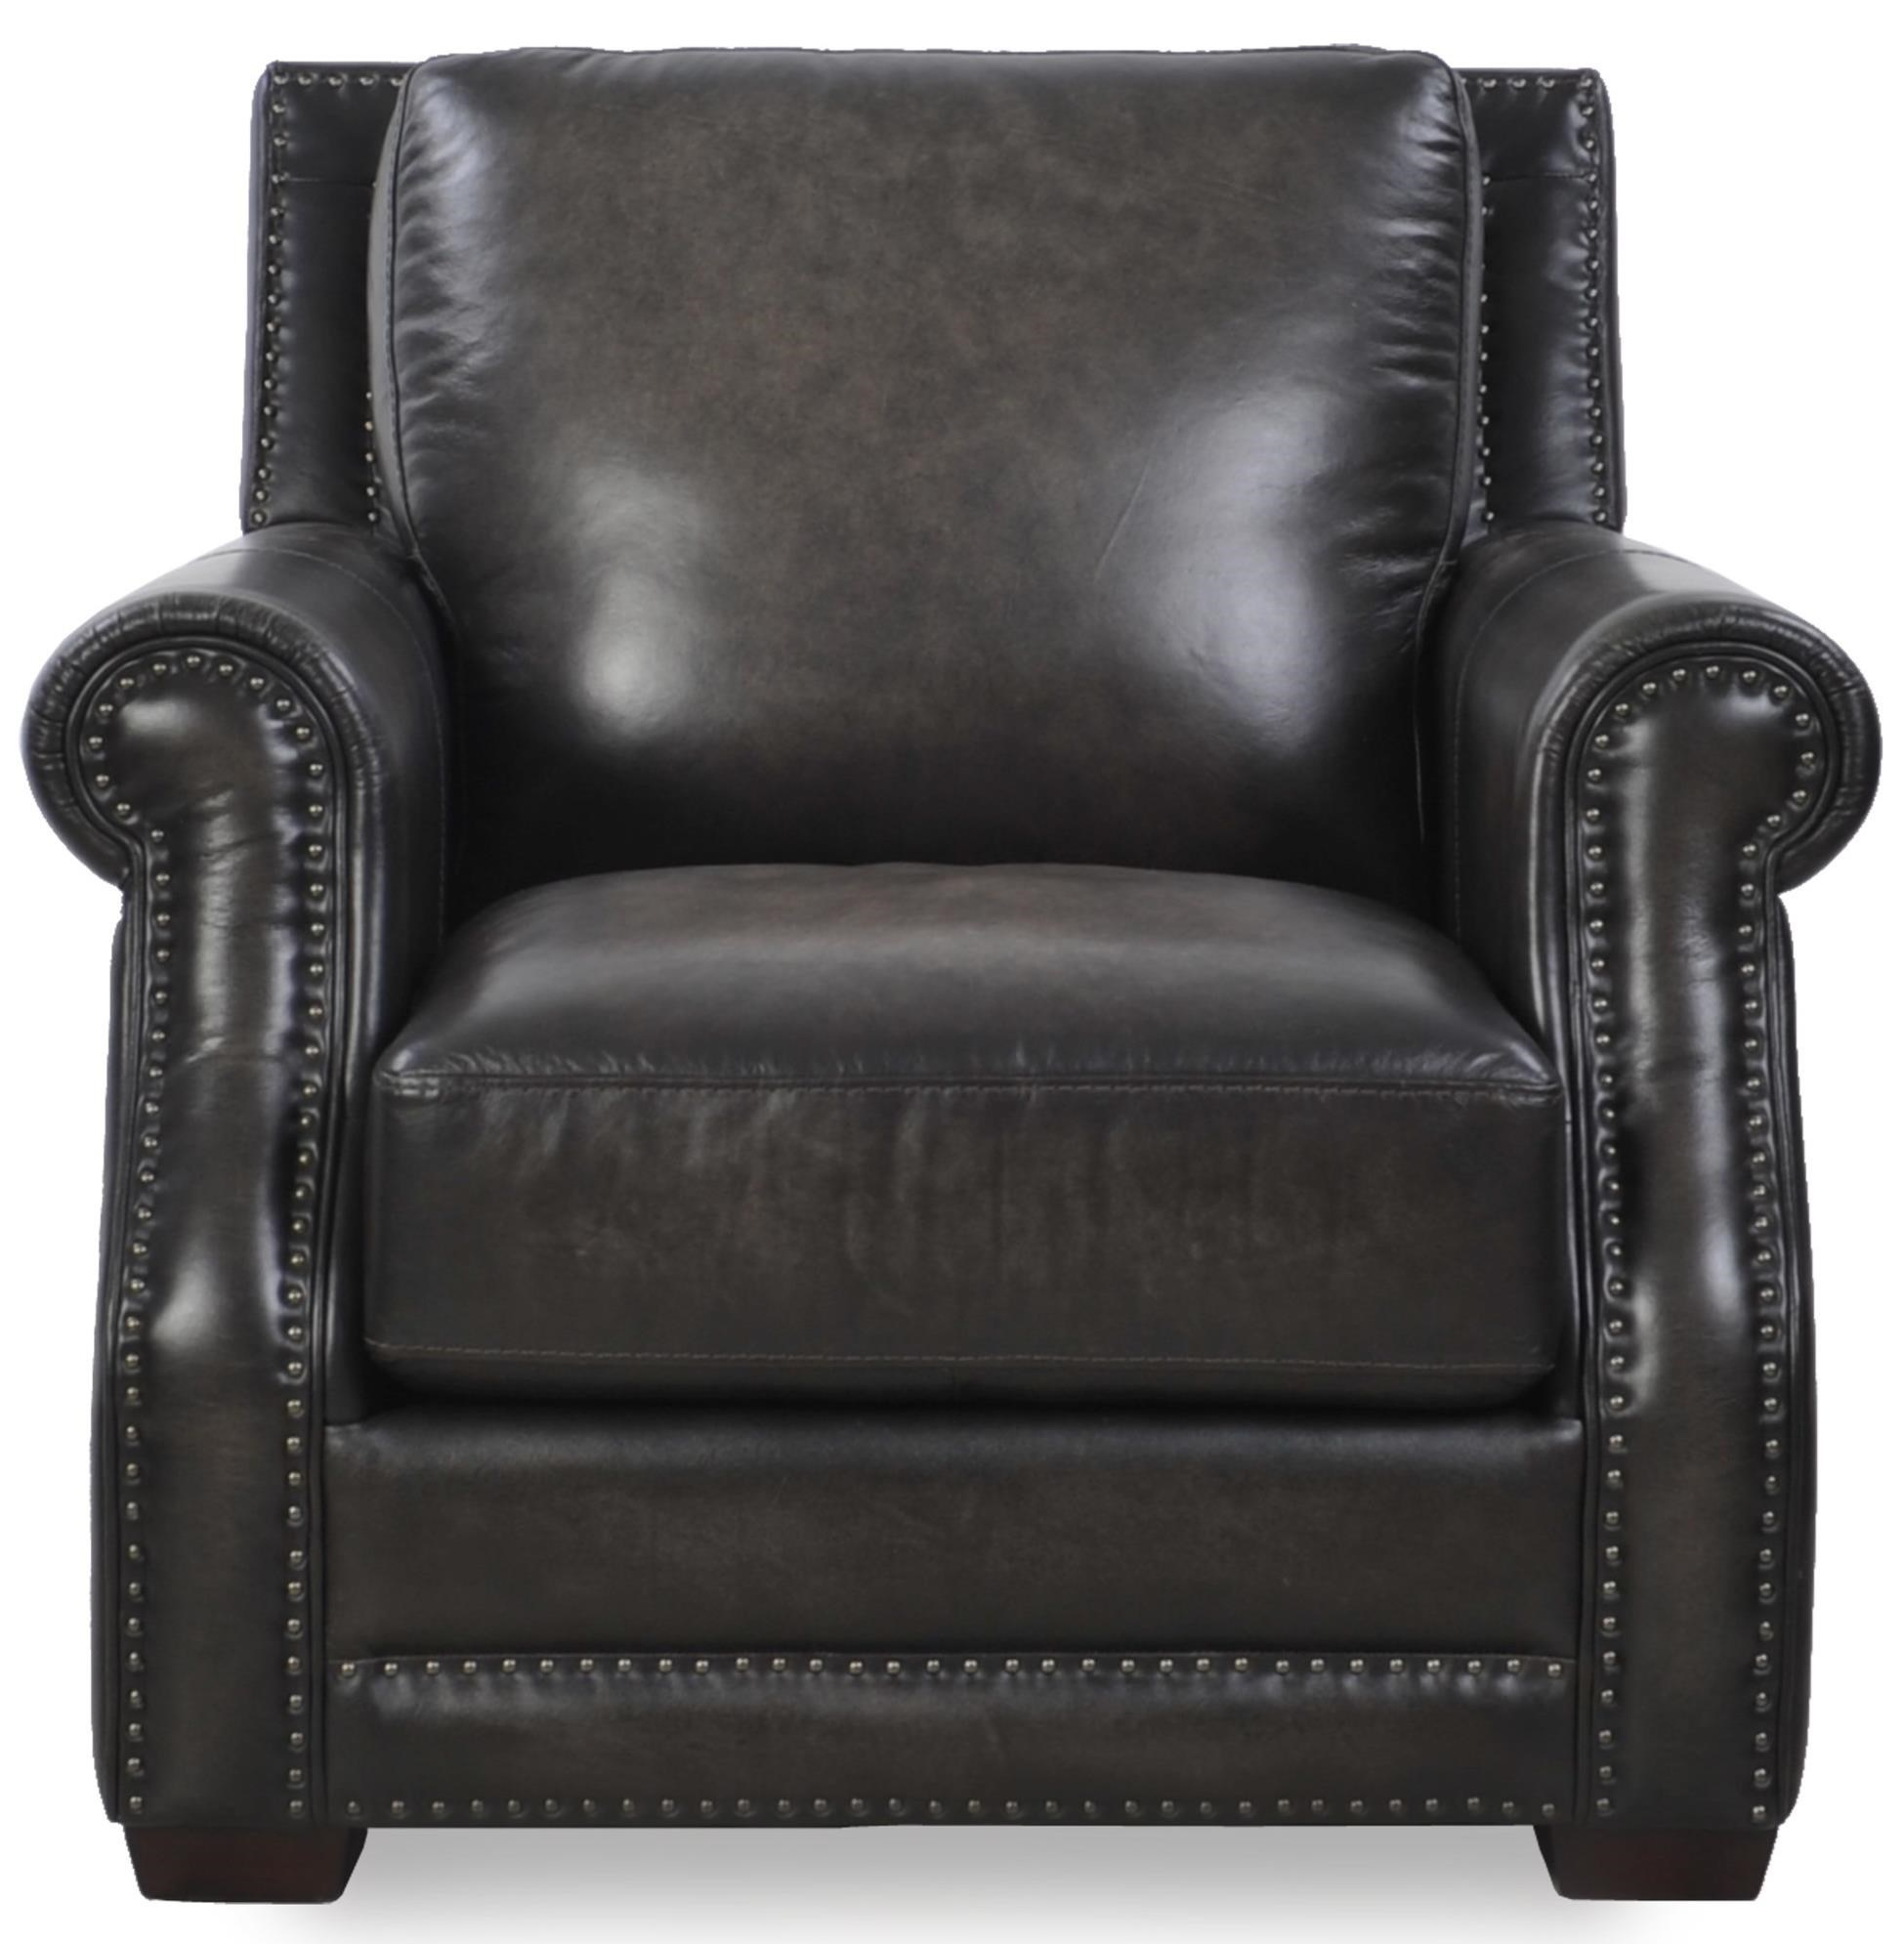 Futura Leather 10030 Chair - Item Number: 10030-10-2692S